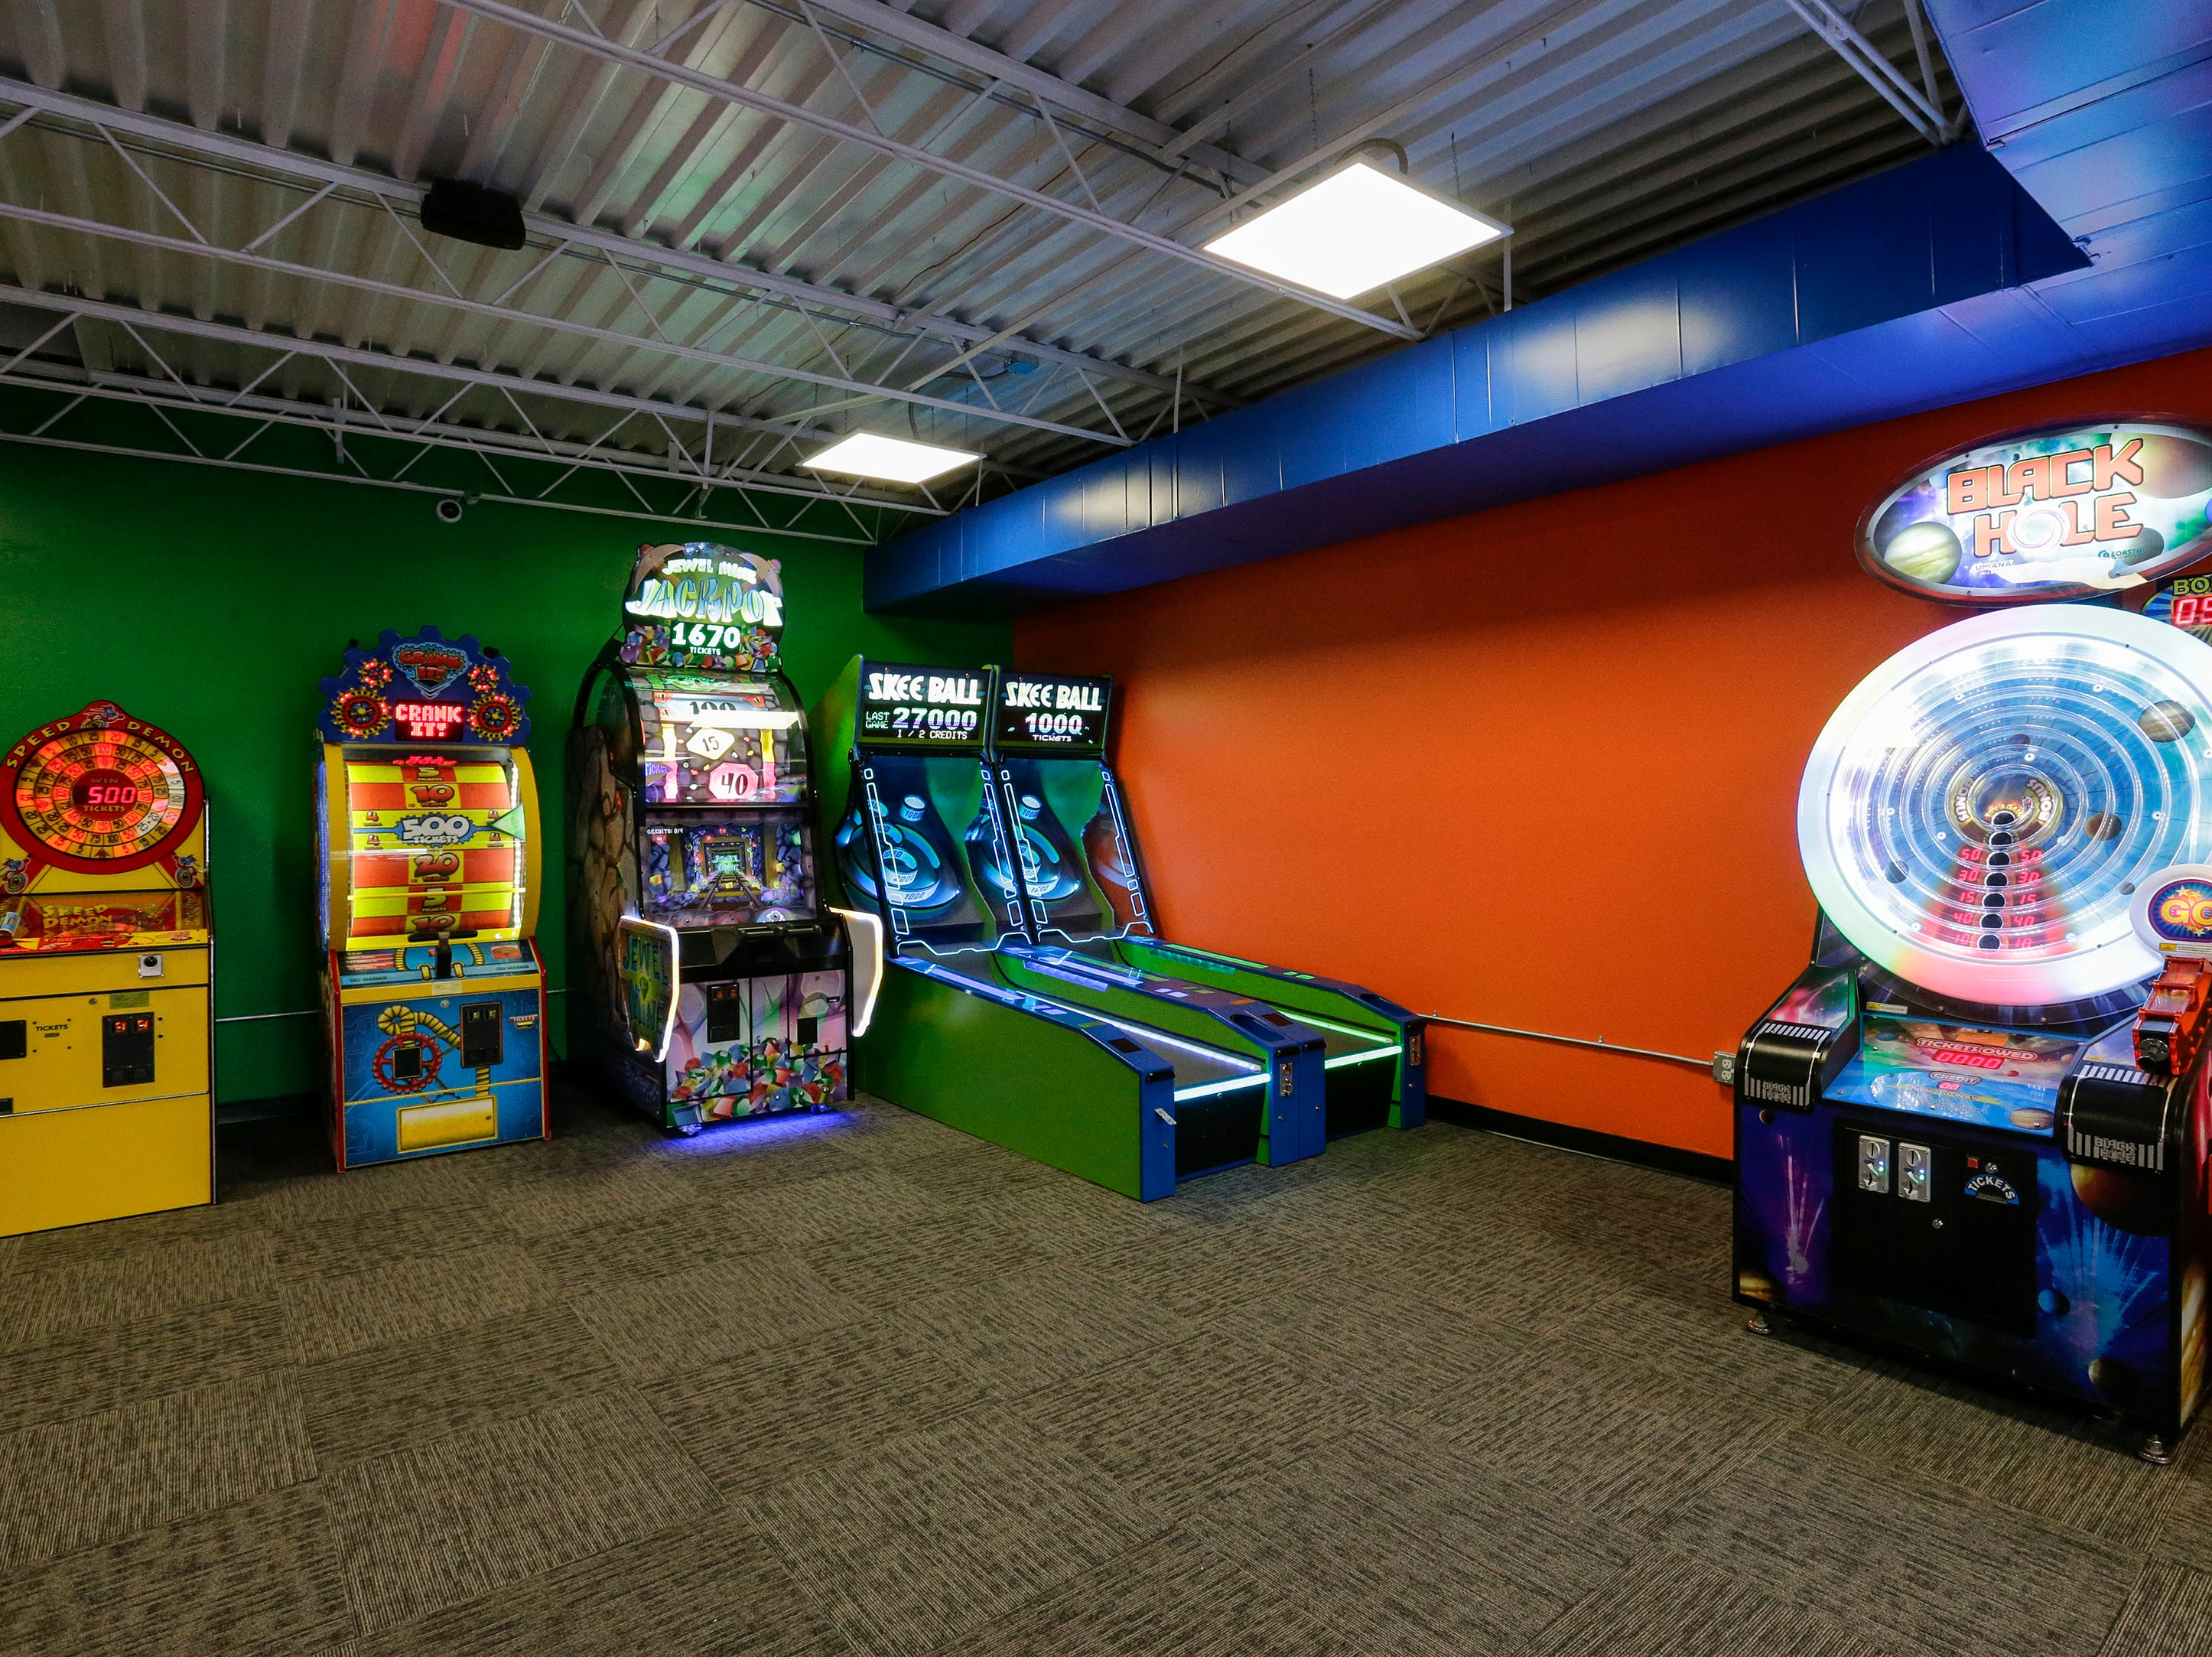 The arcade at Strand Adventures Wednesday, May 1, 2019, in Manitowoc, Wis. Joshua Clark/USA TODAY NETWORK-Wisconsin